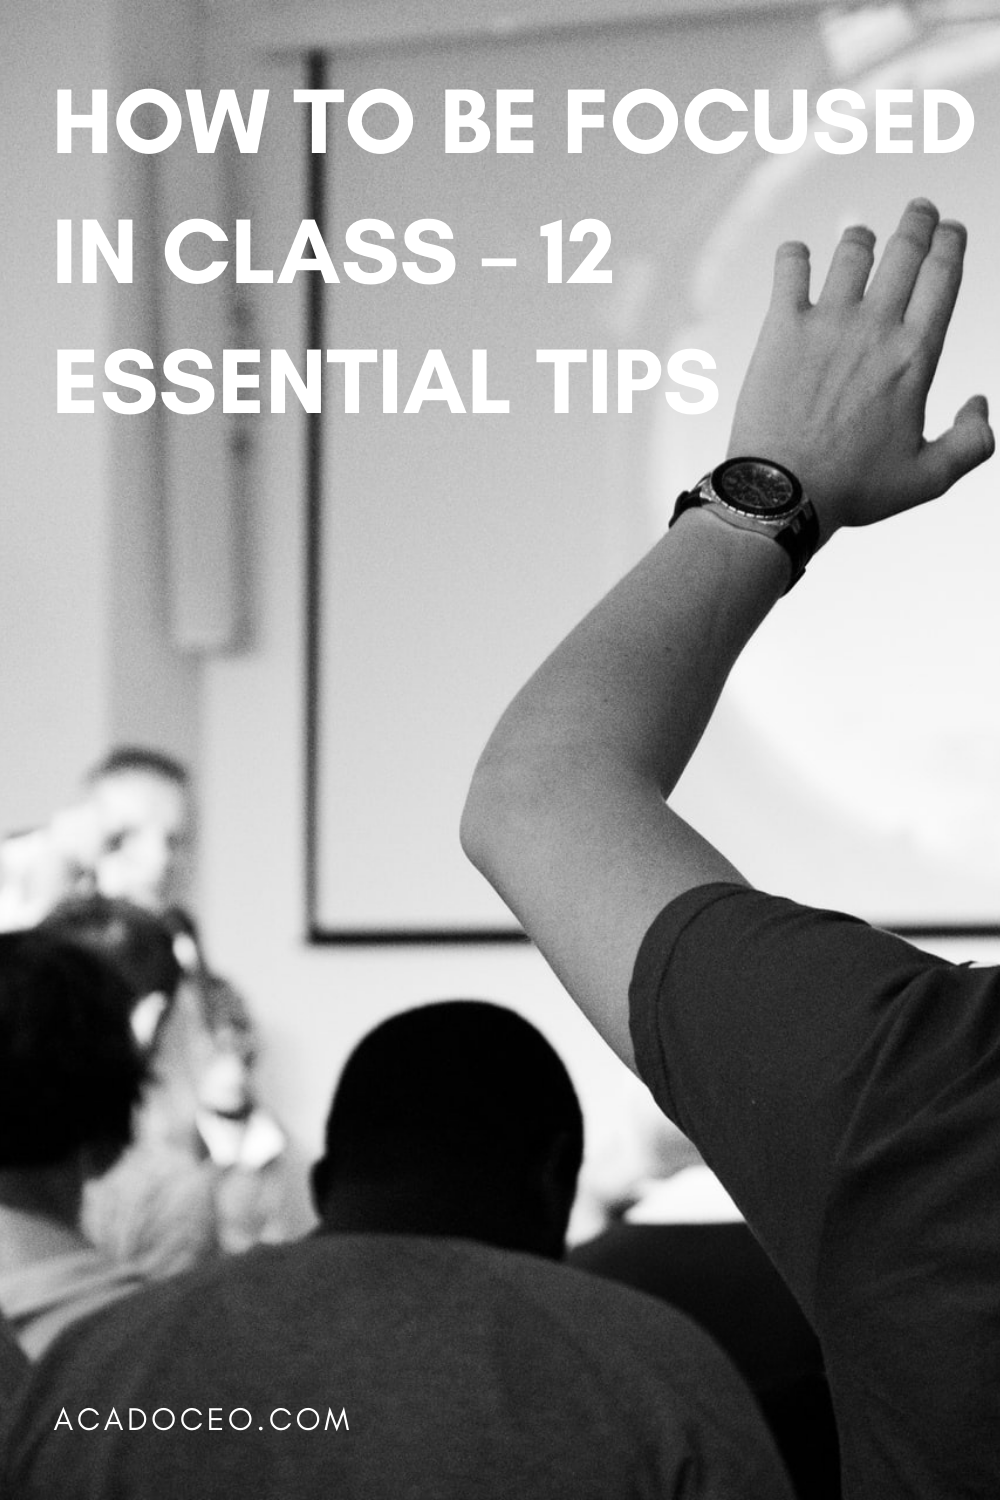 How to be Focused in class - 12 Essential Tips